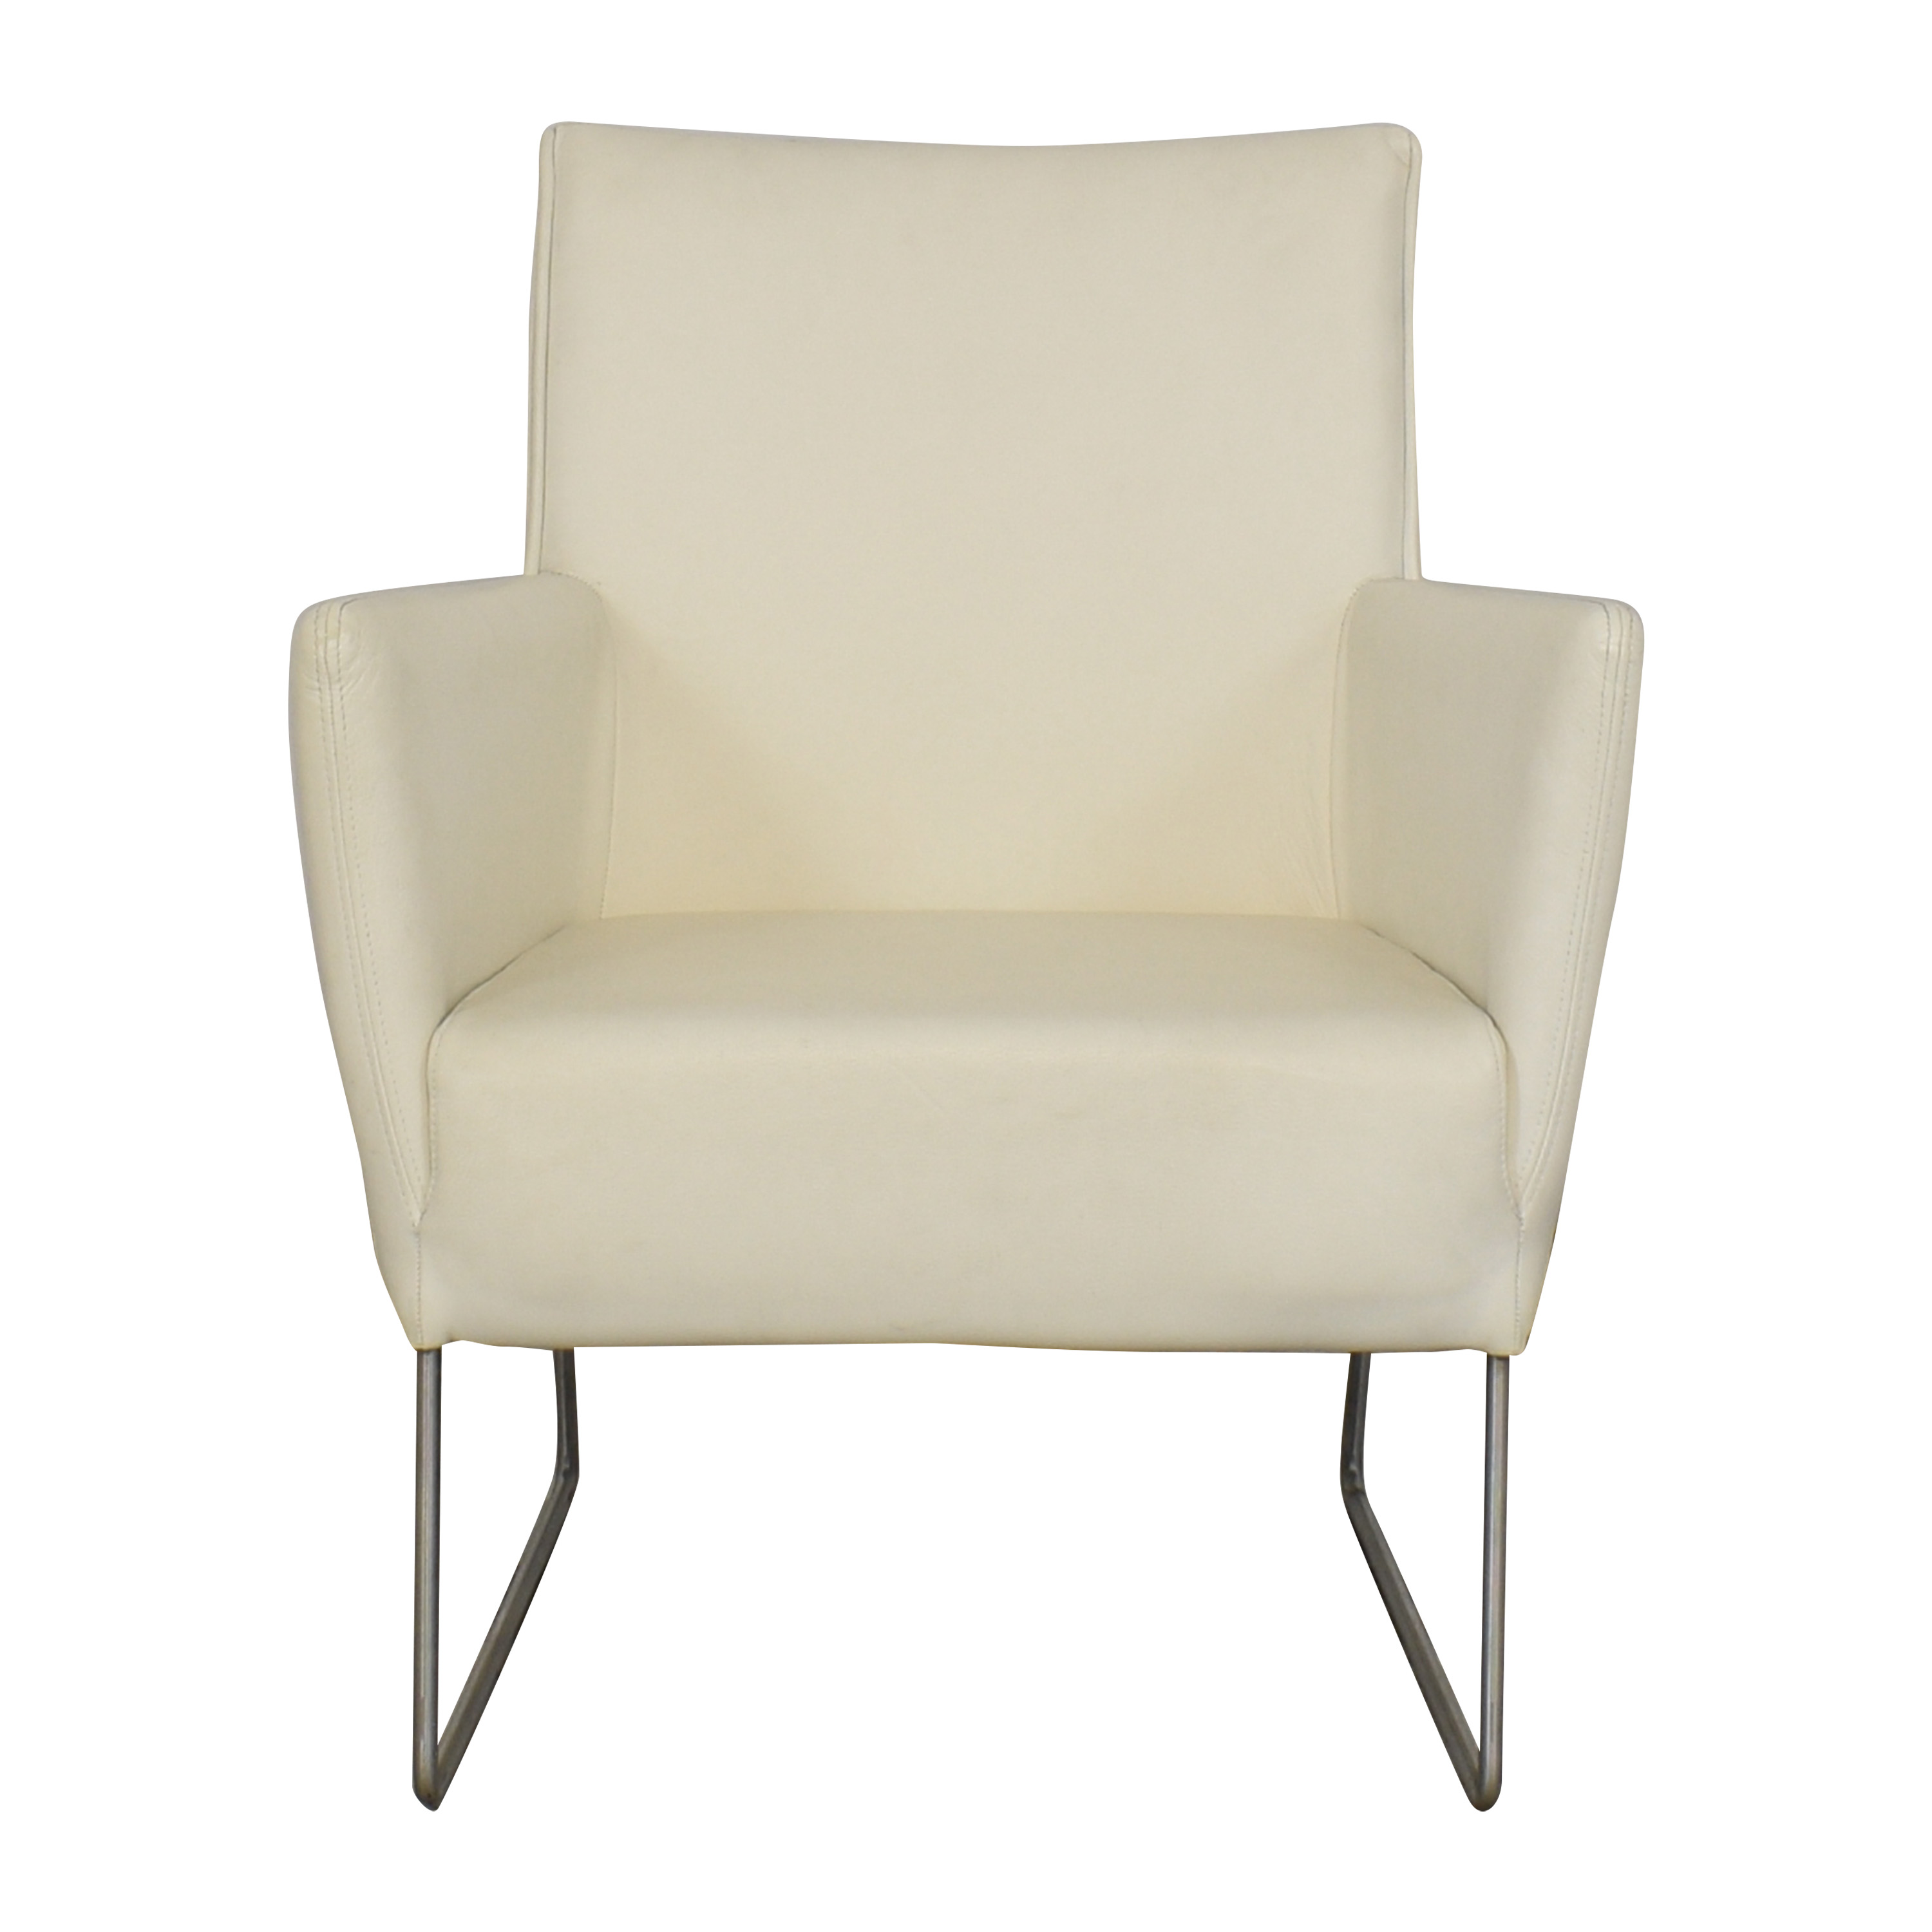 White Modern Arm Chair used